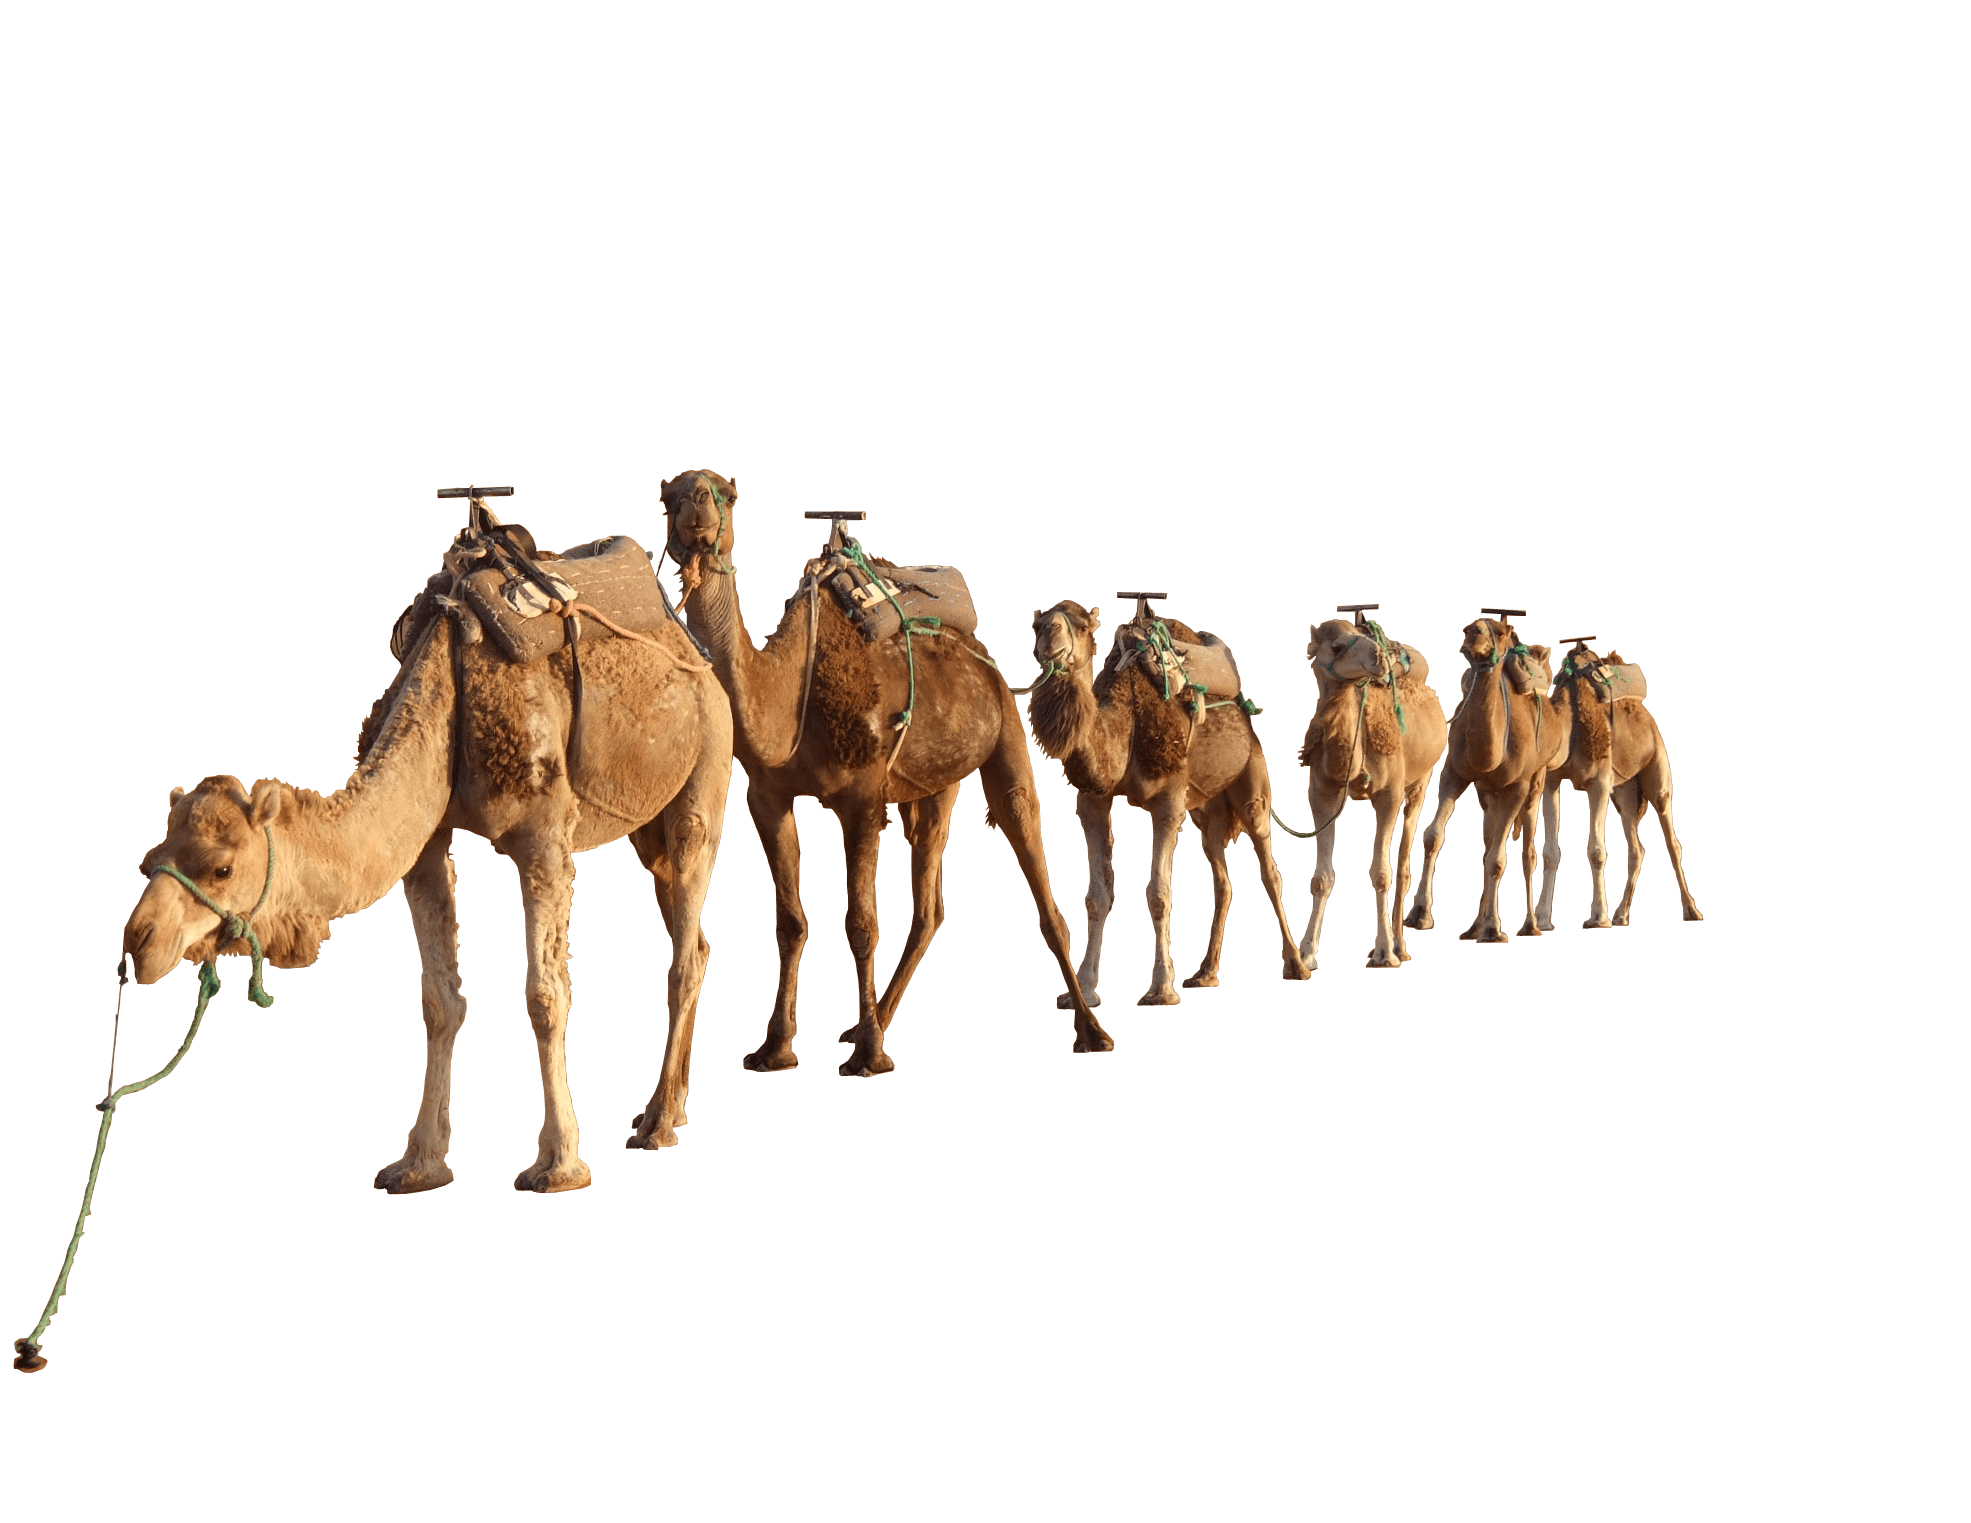 Camels In The Desert Png - Camel Group, Transparent background PNG HD thumbnail